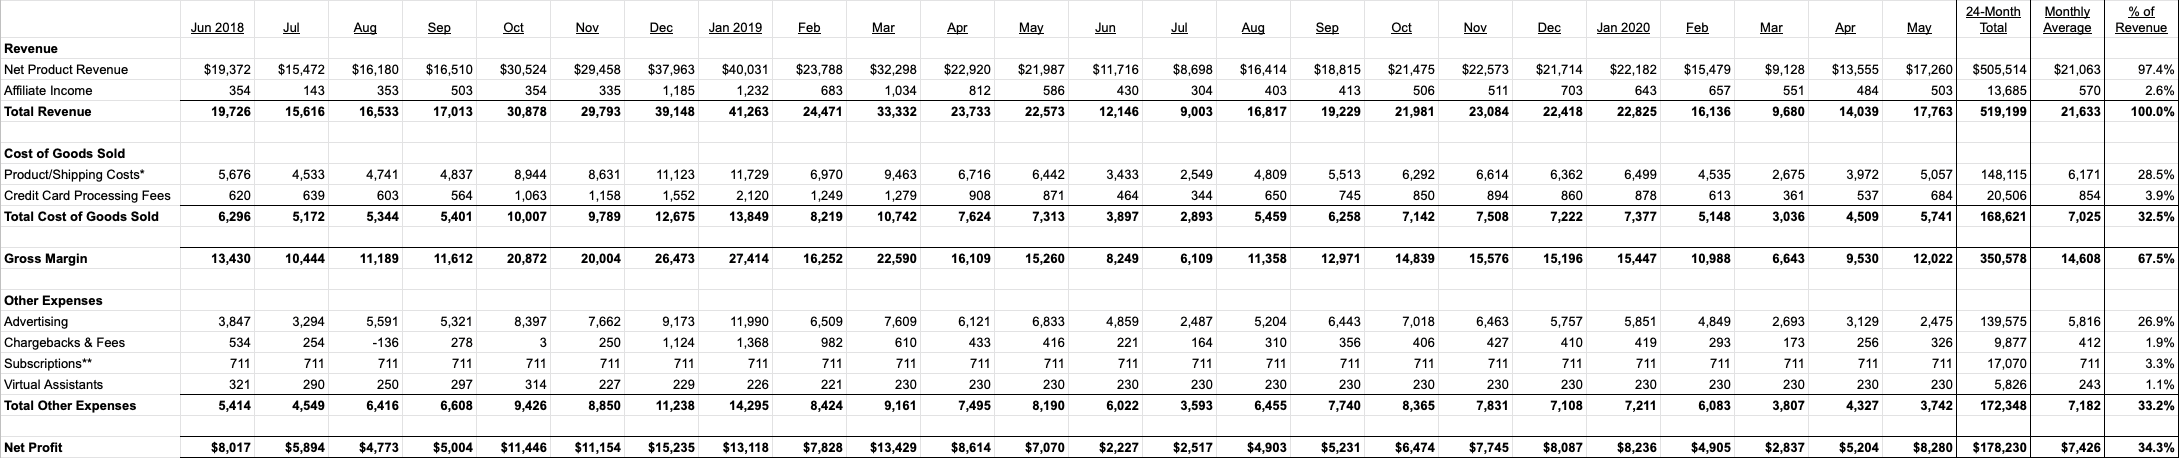 Profit & Loss Statement - June 2018 - May 2020